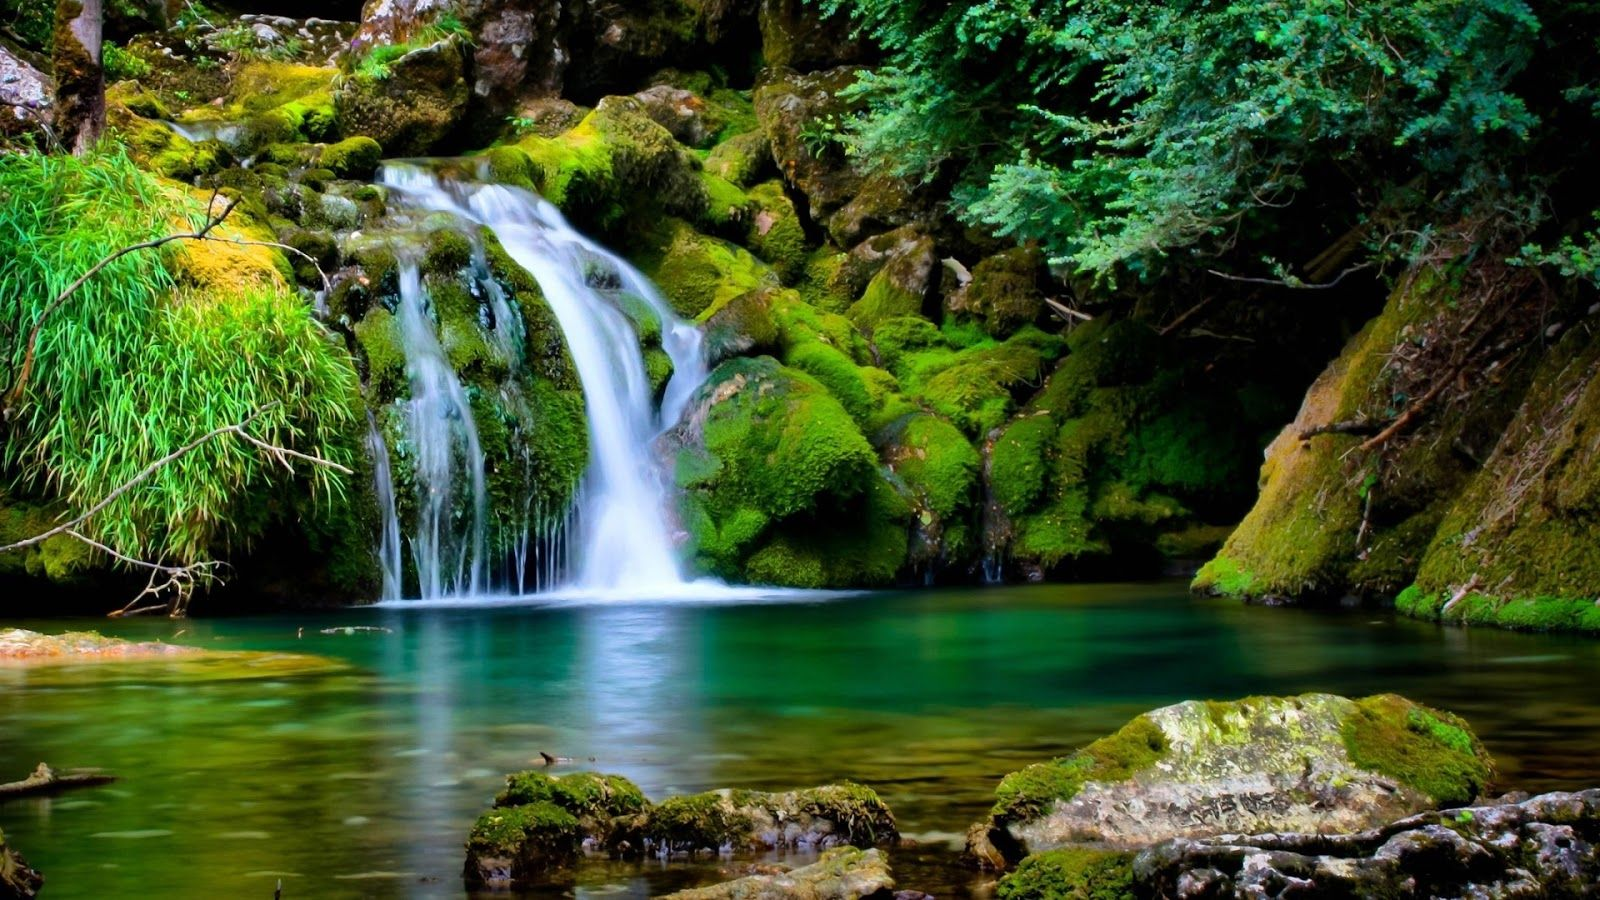 Free Nature Hd Wallpapers Download Group 1600 900 Pc Hd Wallpapers Nature 31 Wallpapers A Waterfall Scenery Beautiful Nature Wallpaper Waterfall Wallpaper